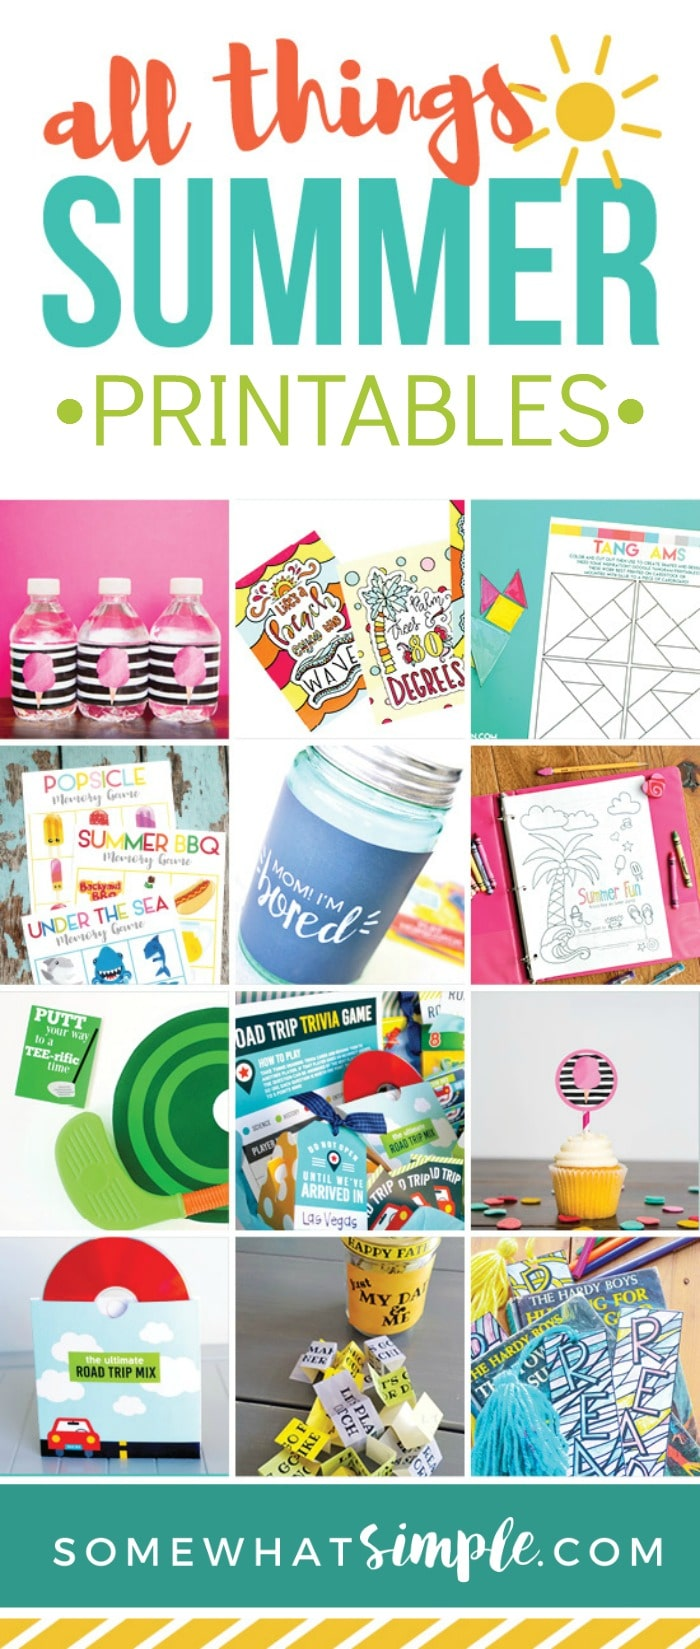 16 bloggers and designers have created the ULTIMATE Summer bundle, jam packed with fun and useful summer printables!